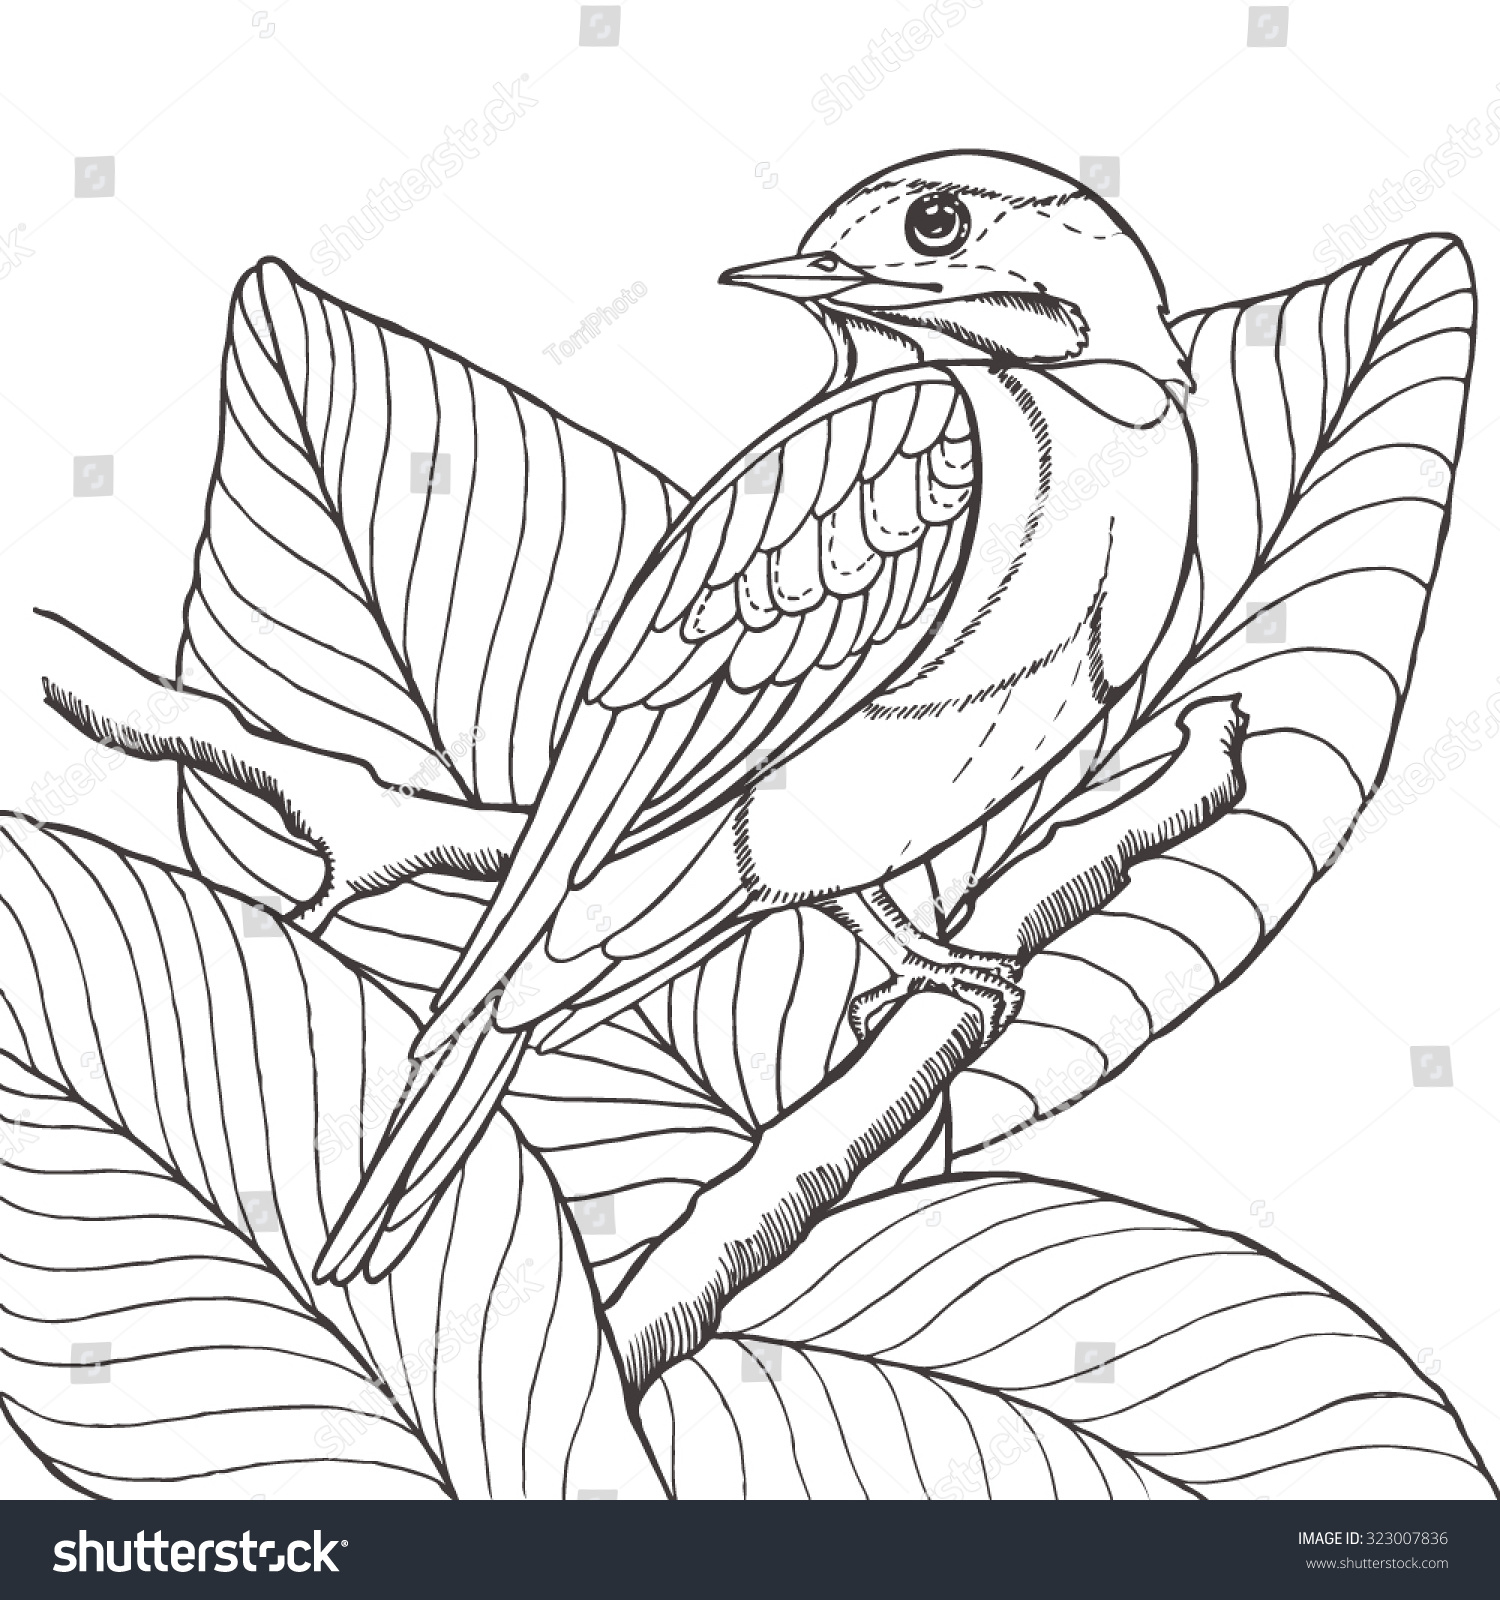 Sketch Tropical Bird Sitting On Branch Stock Vector ...